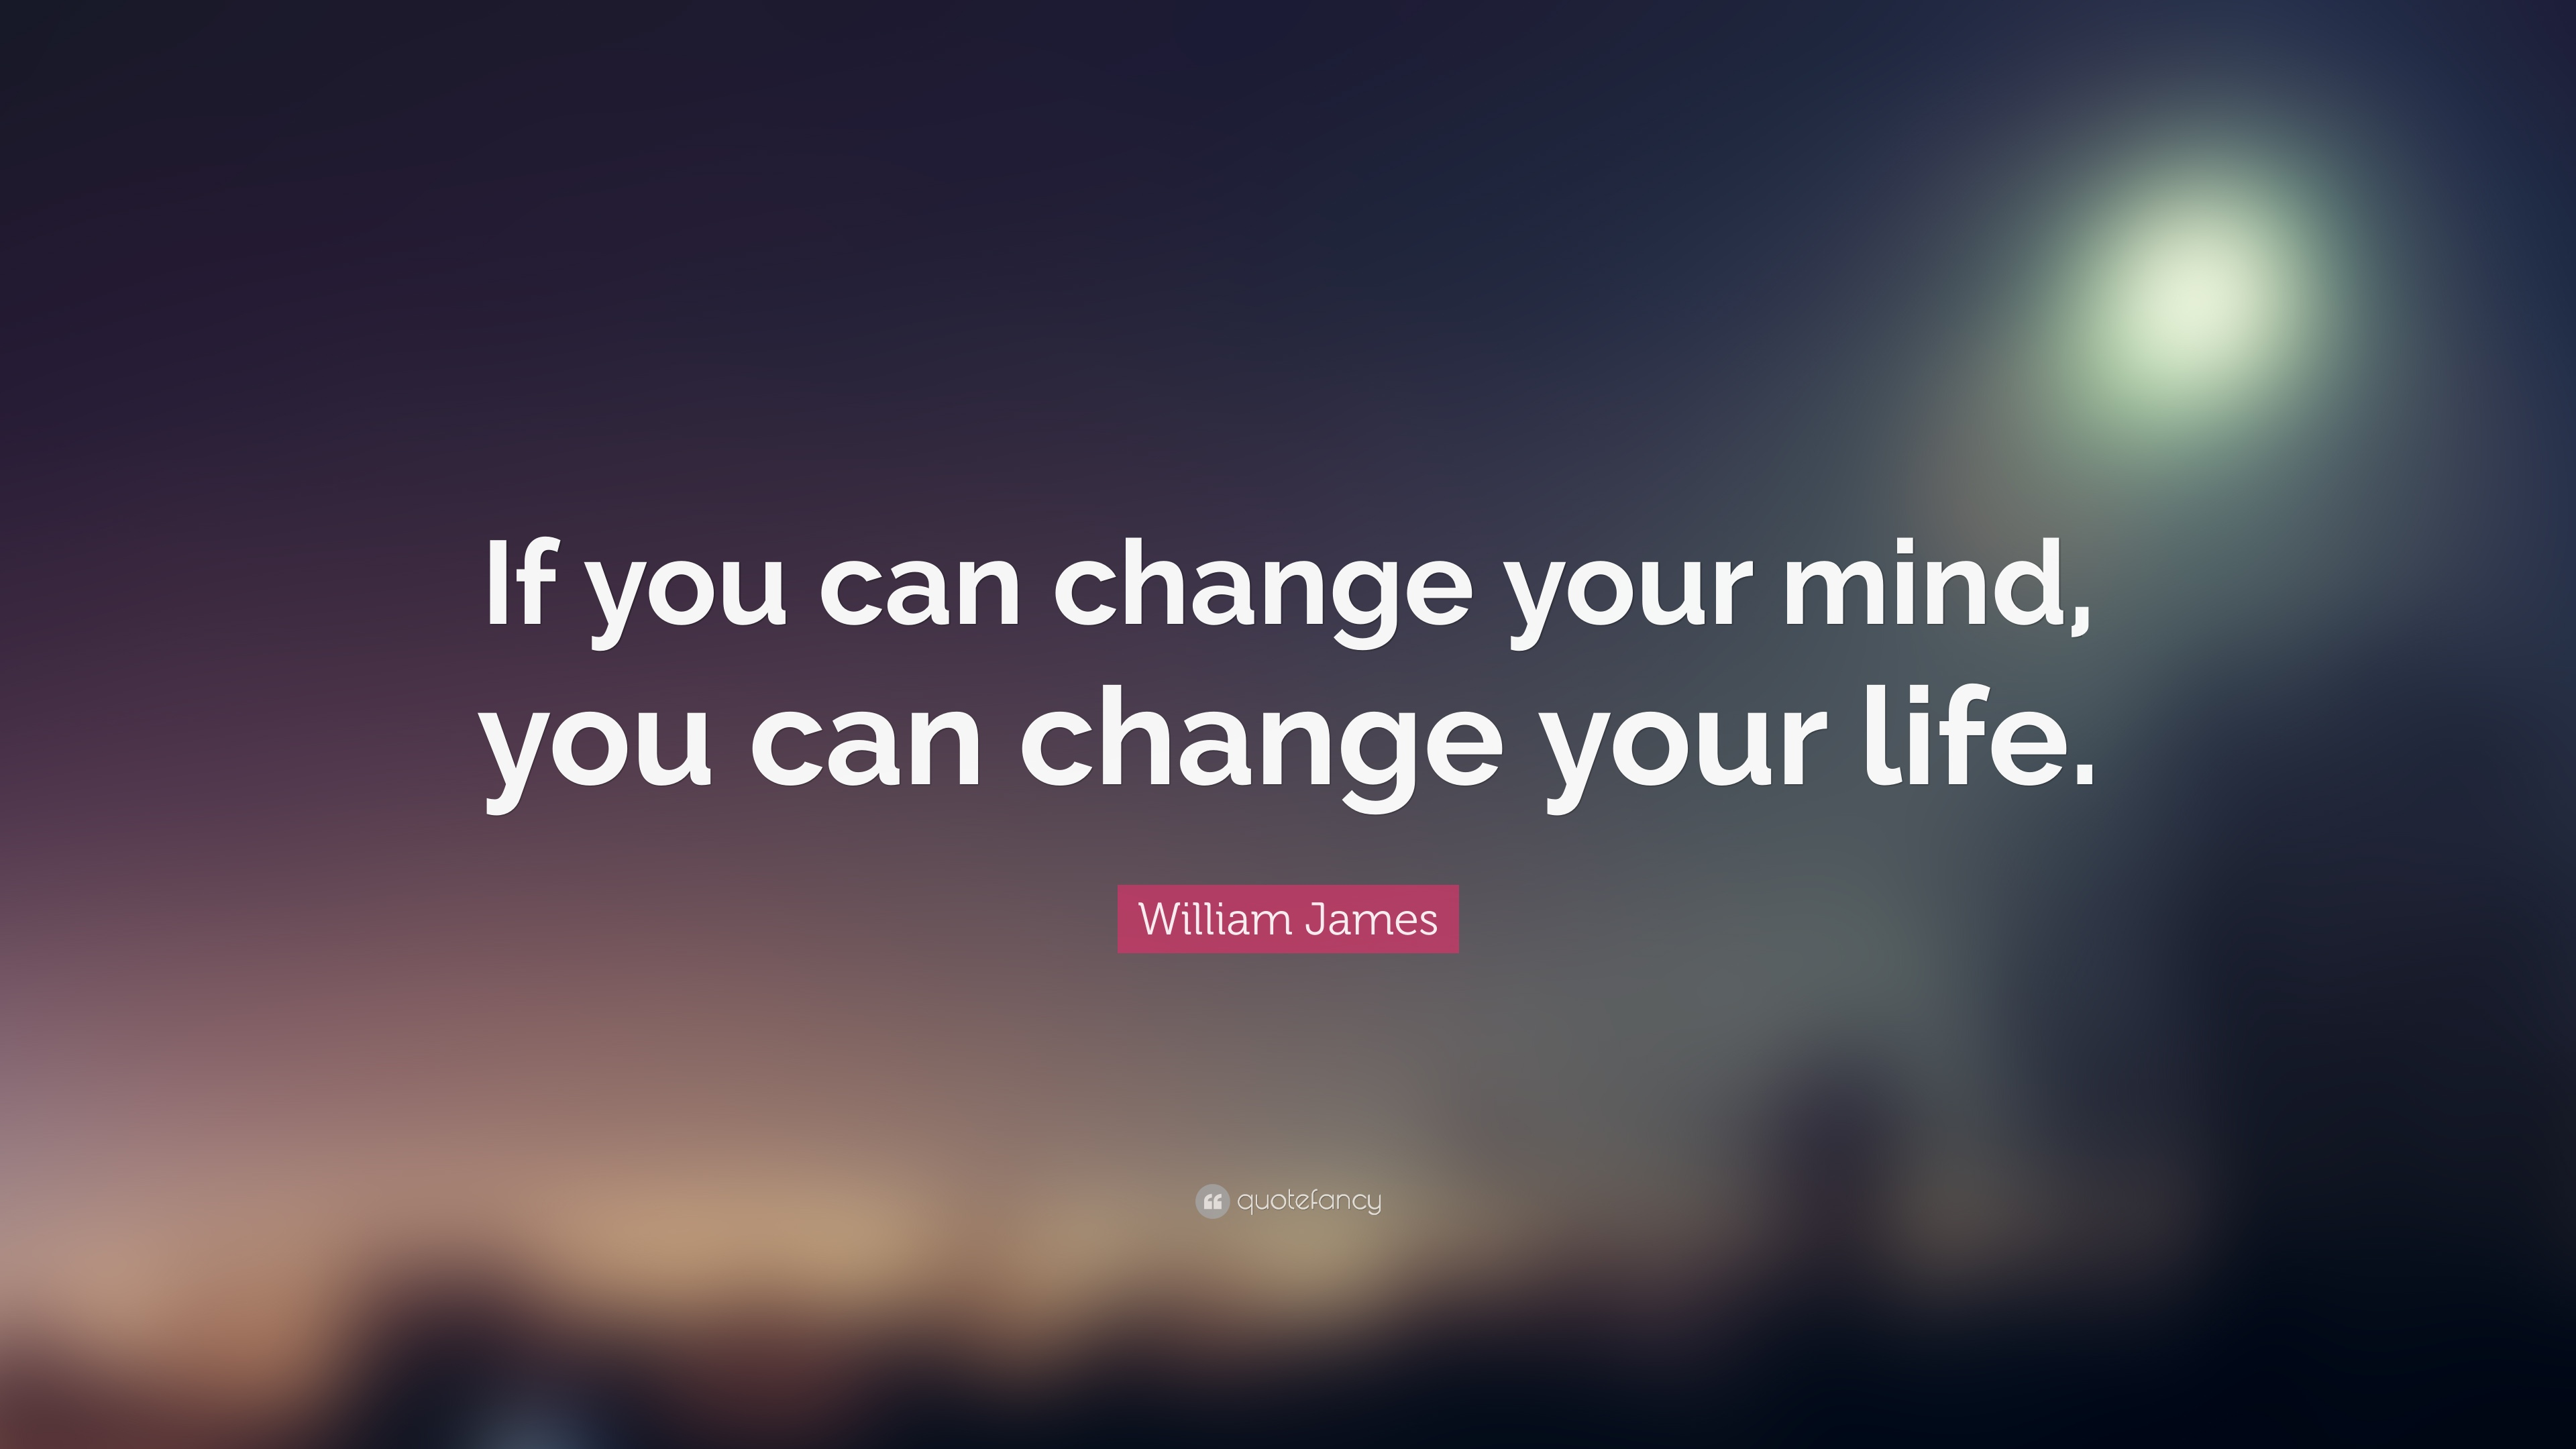 Theodore Roosevelt Wallpaper Quote William James Quote If You Can Change Your Mind You Can